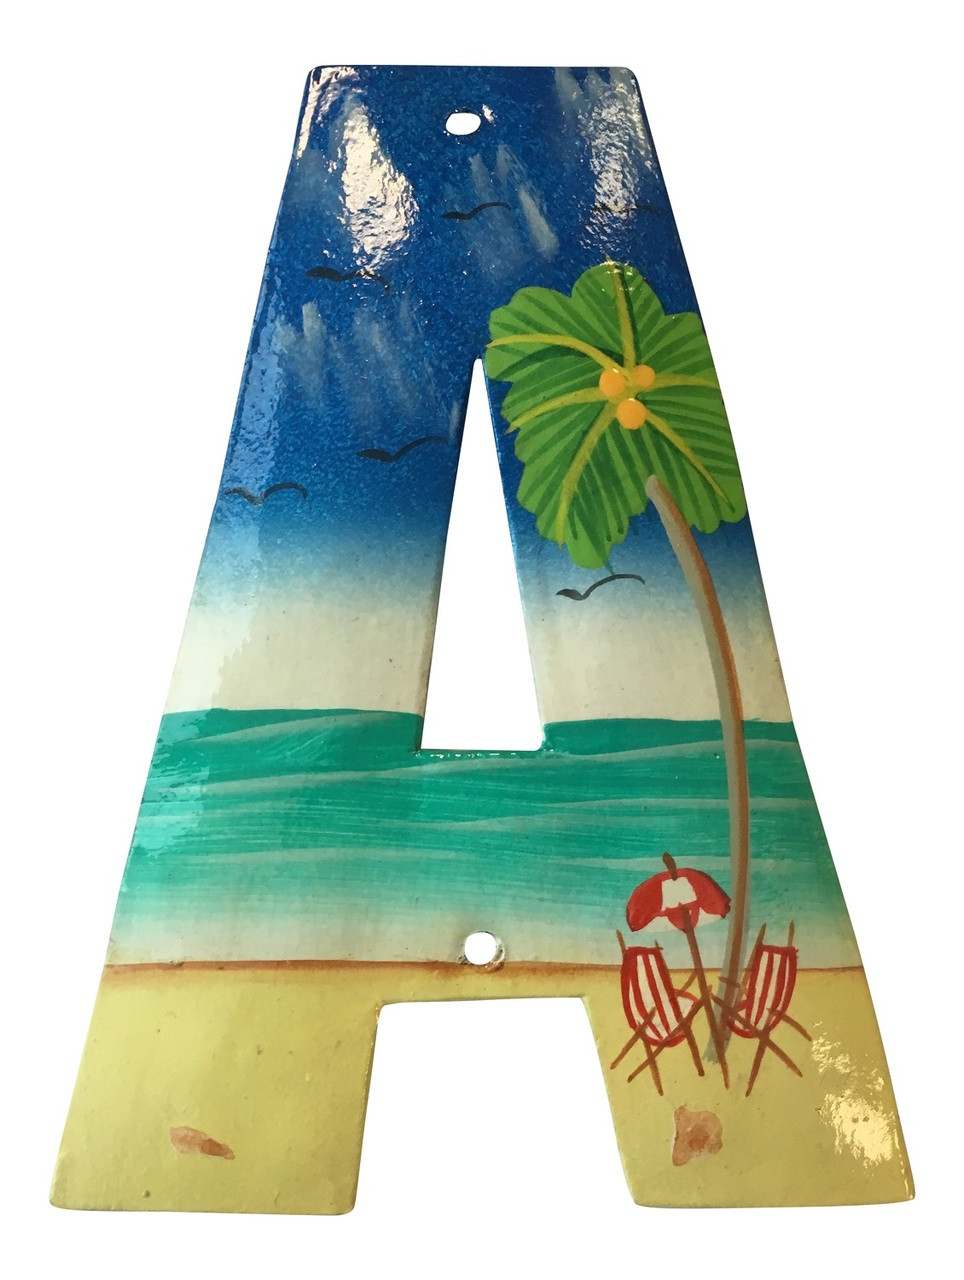 House Number Letter A Tropical Reef Beach Haitian Metal Art Hand Crafted Mary B Decorative Art